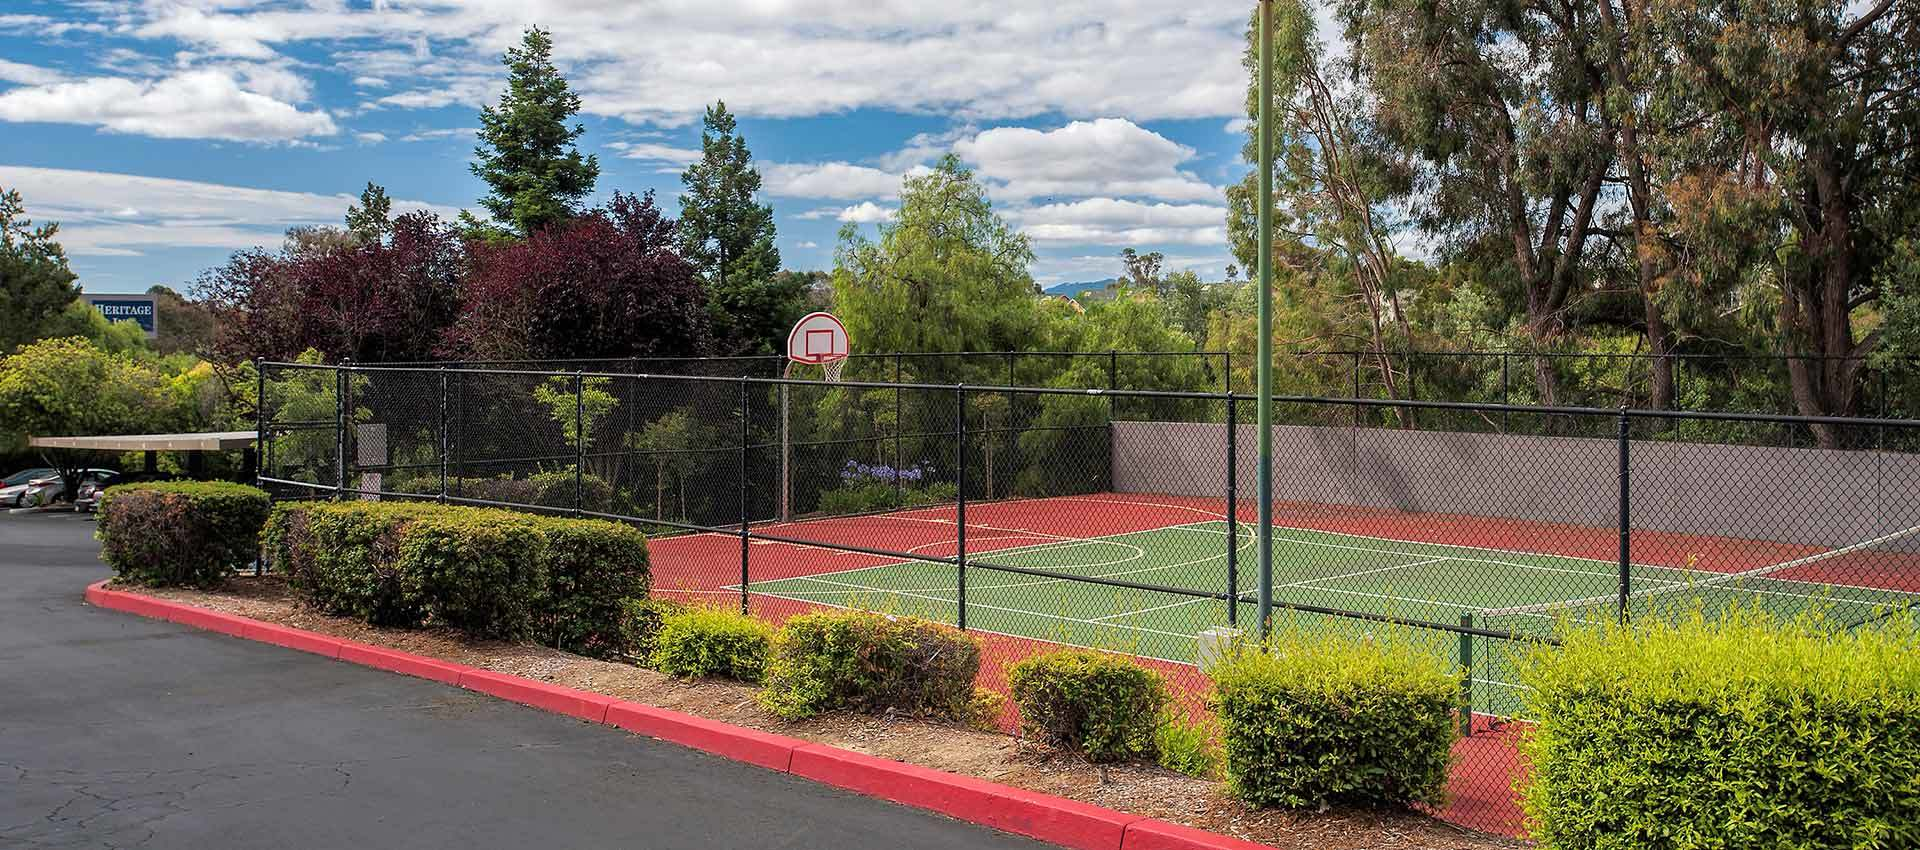 Basketball Court at Sterling Heights Apartment Homes in Benicia